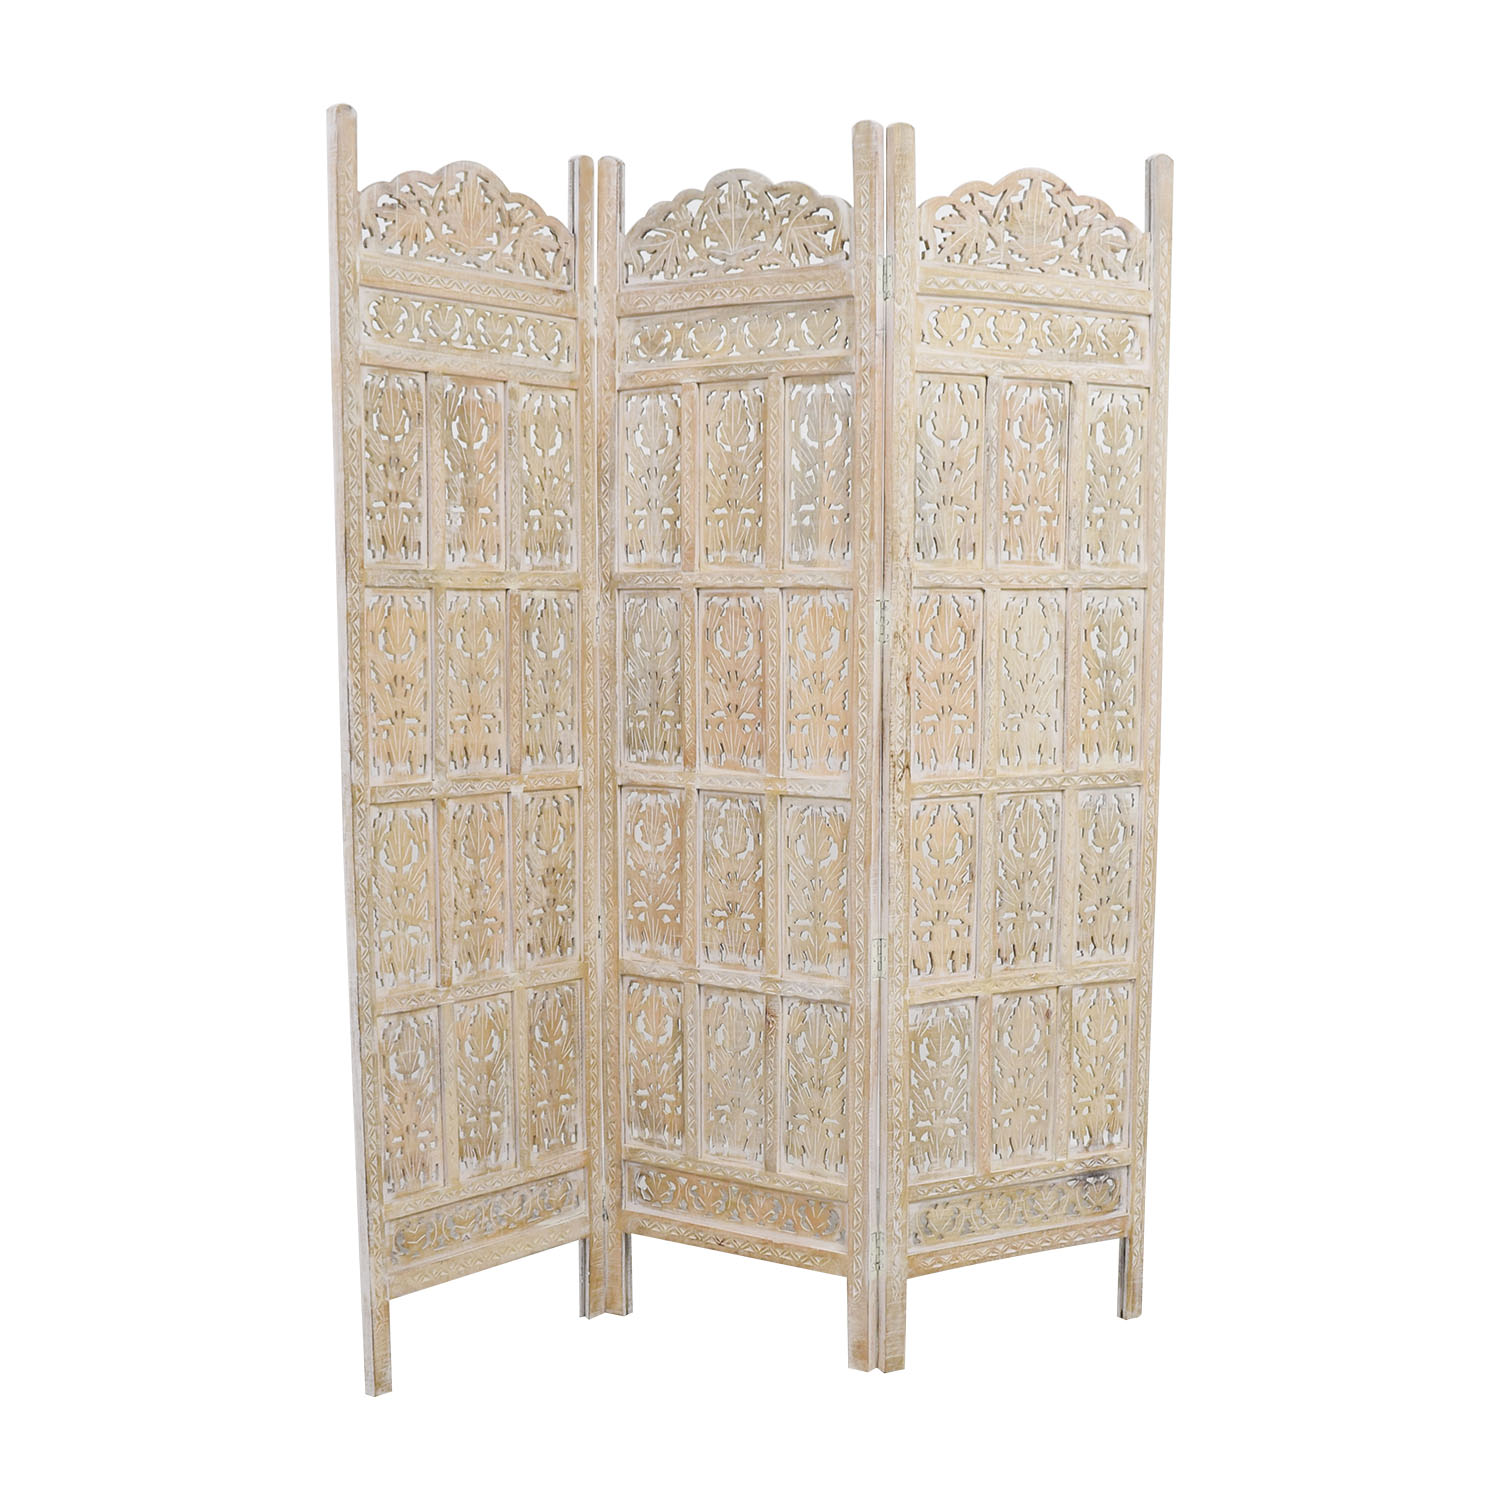 Ornate Screen Divider for sale